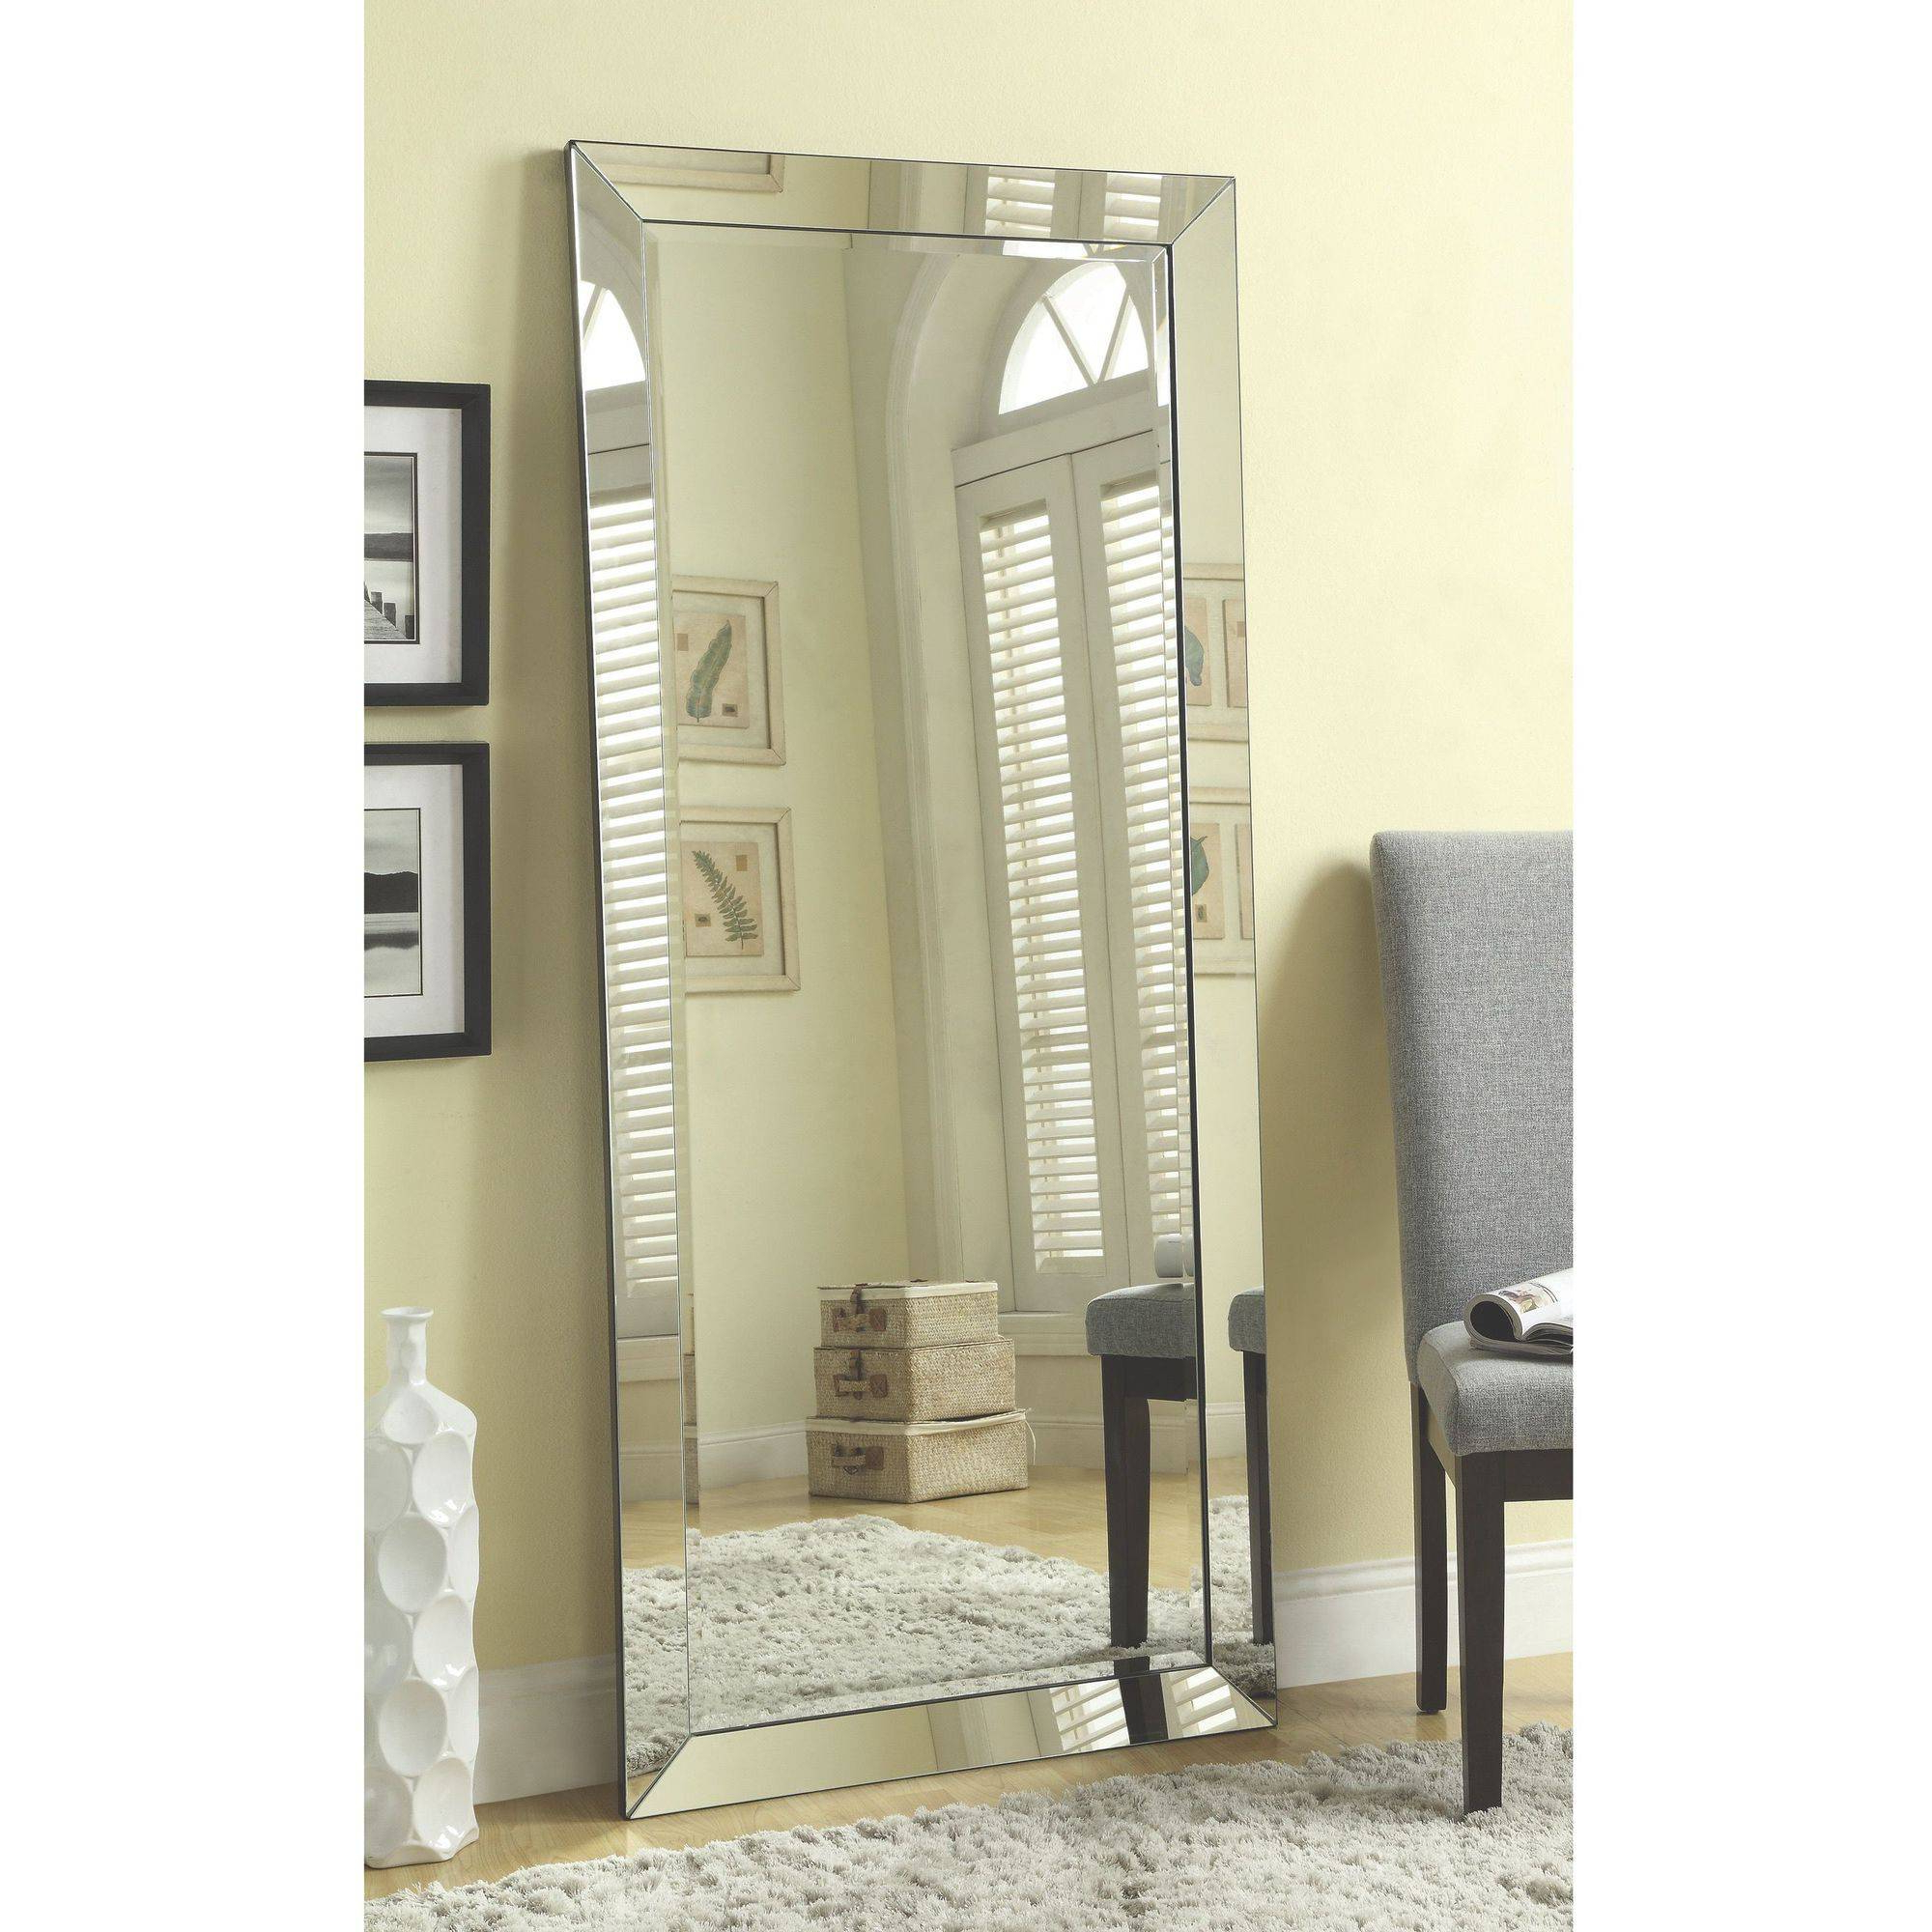 Large Frameless Wall Mirrors Intended For 2020 34 Most Unbeatable Long Wall Mirrors Mirror No Frame Large Frameless (View 13 of 20)